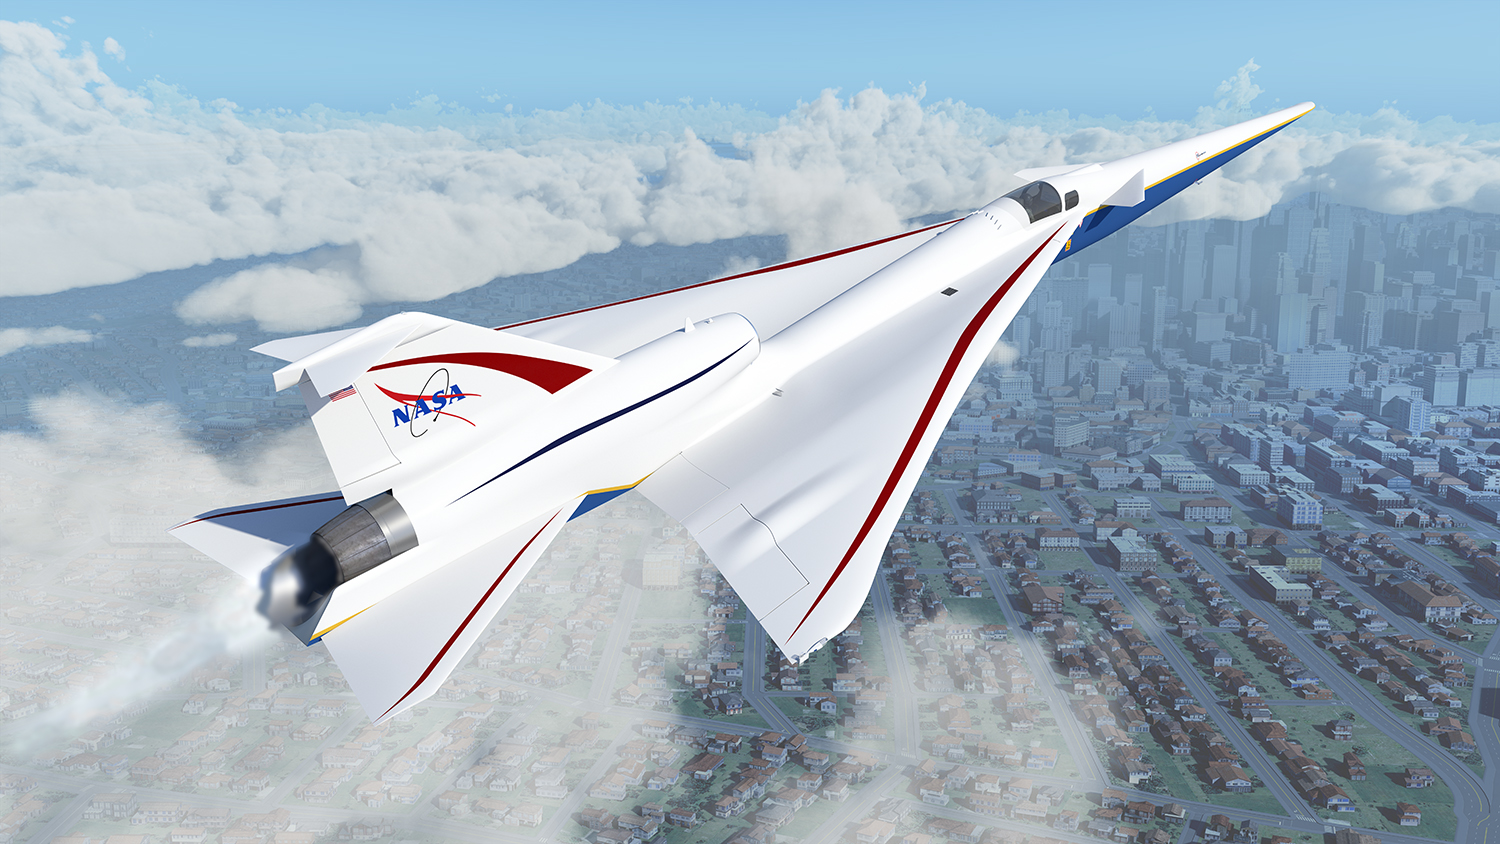 NASA Tests System for Precise Aerial Positioning in Supersonic Flight